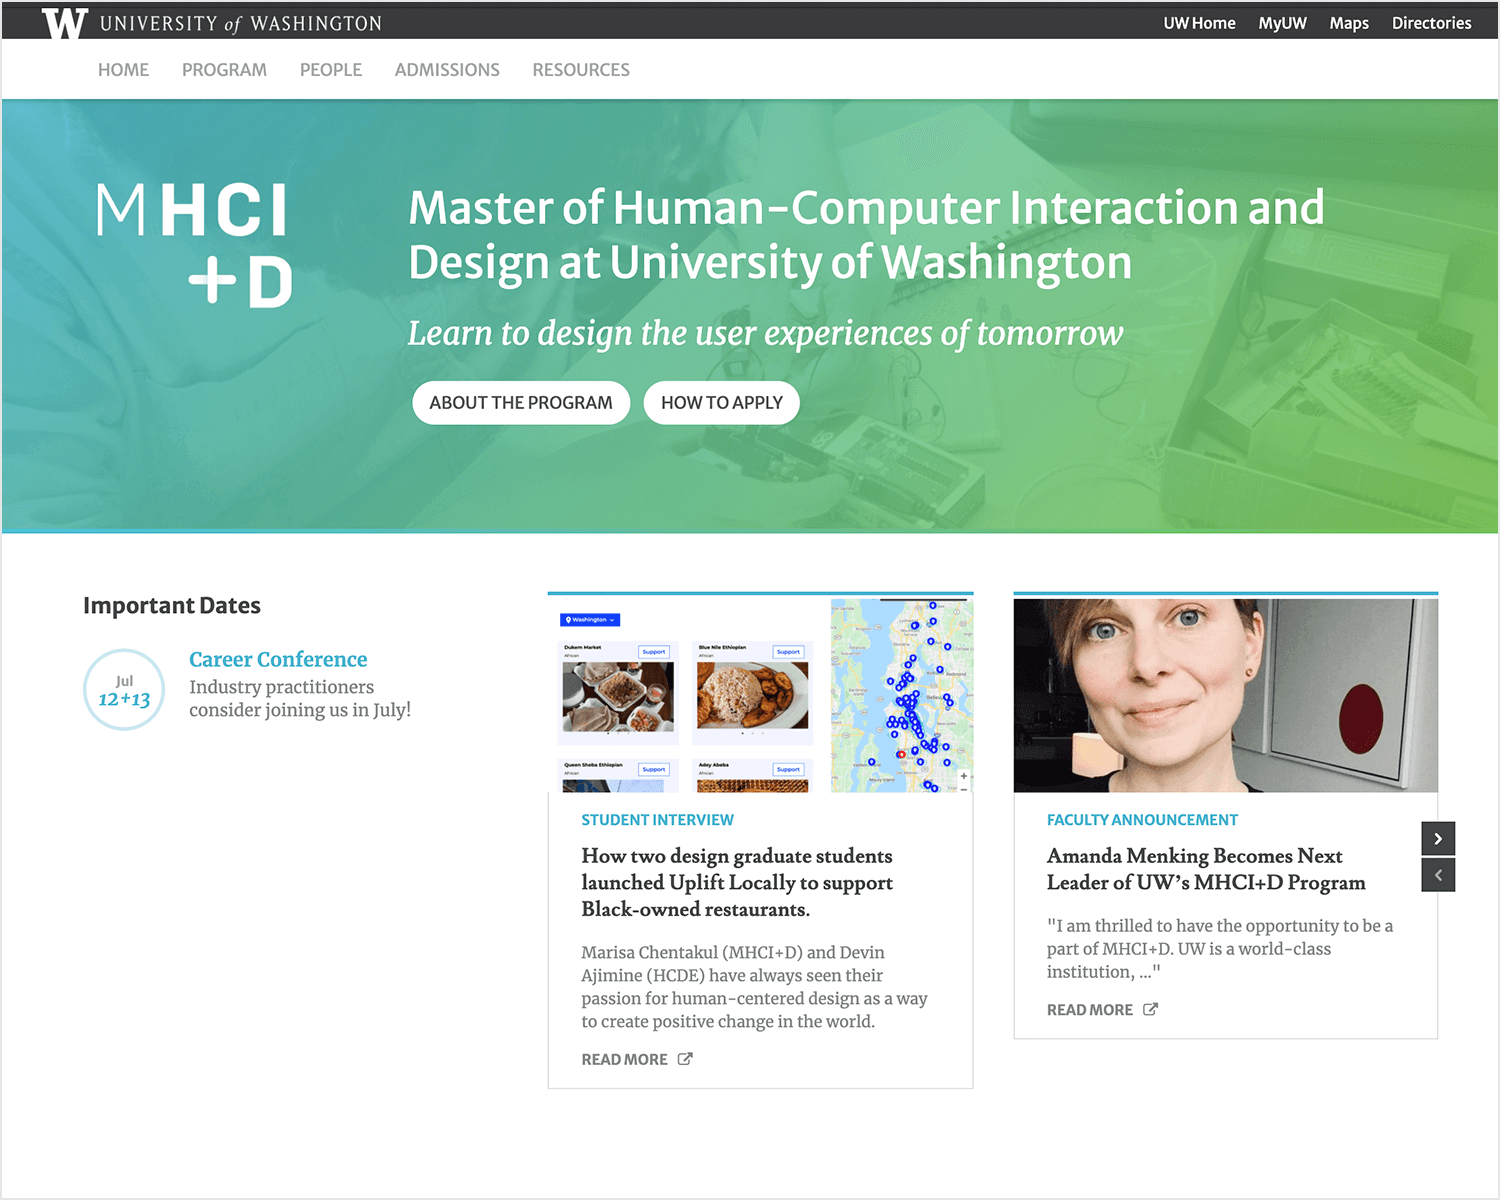 masters degree in human interaction design at seattle